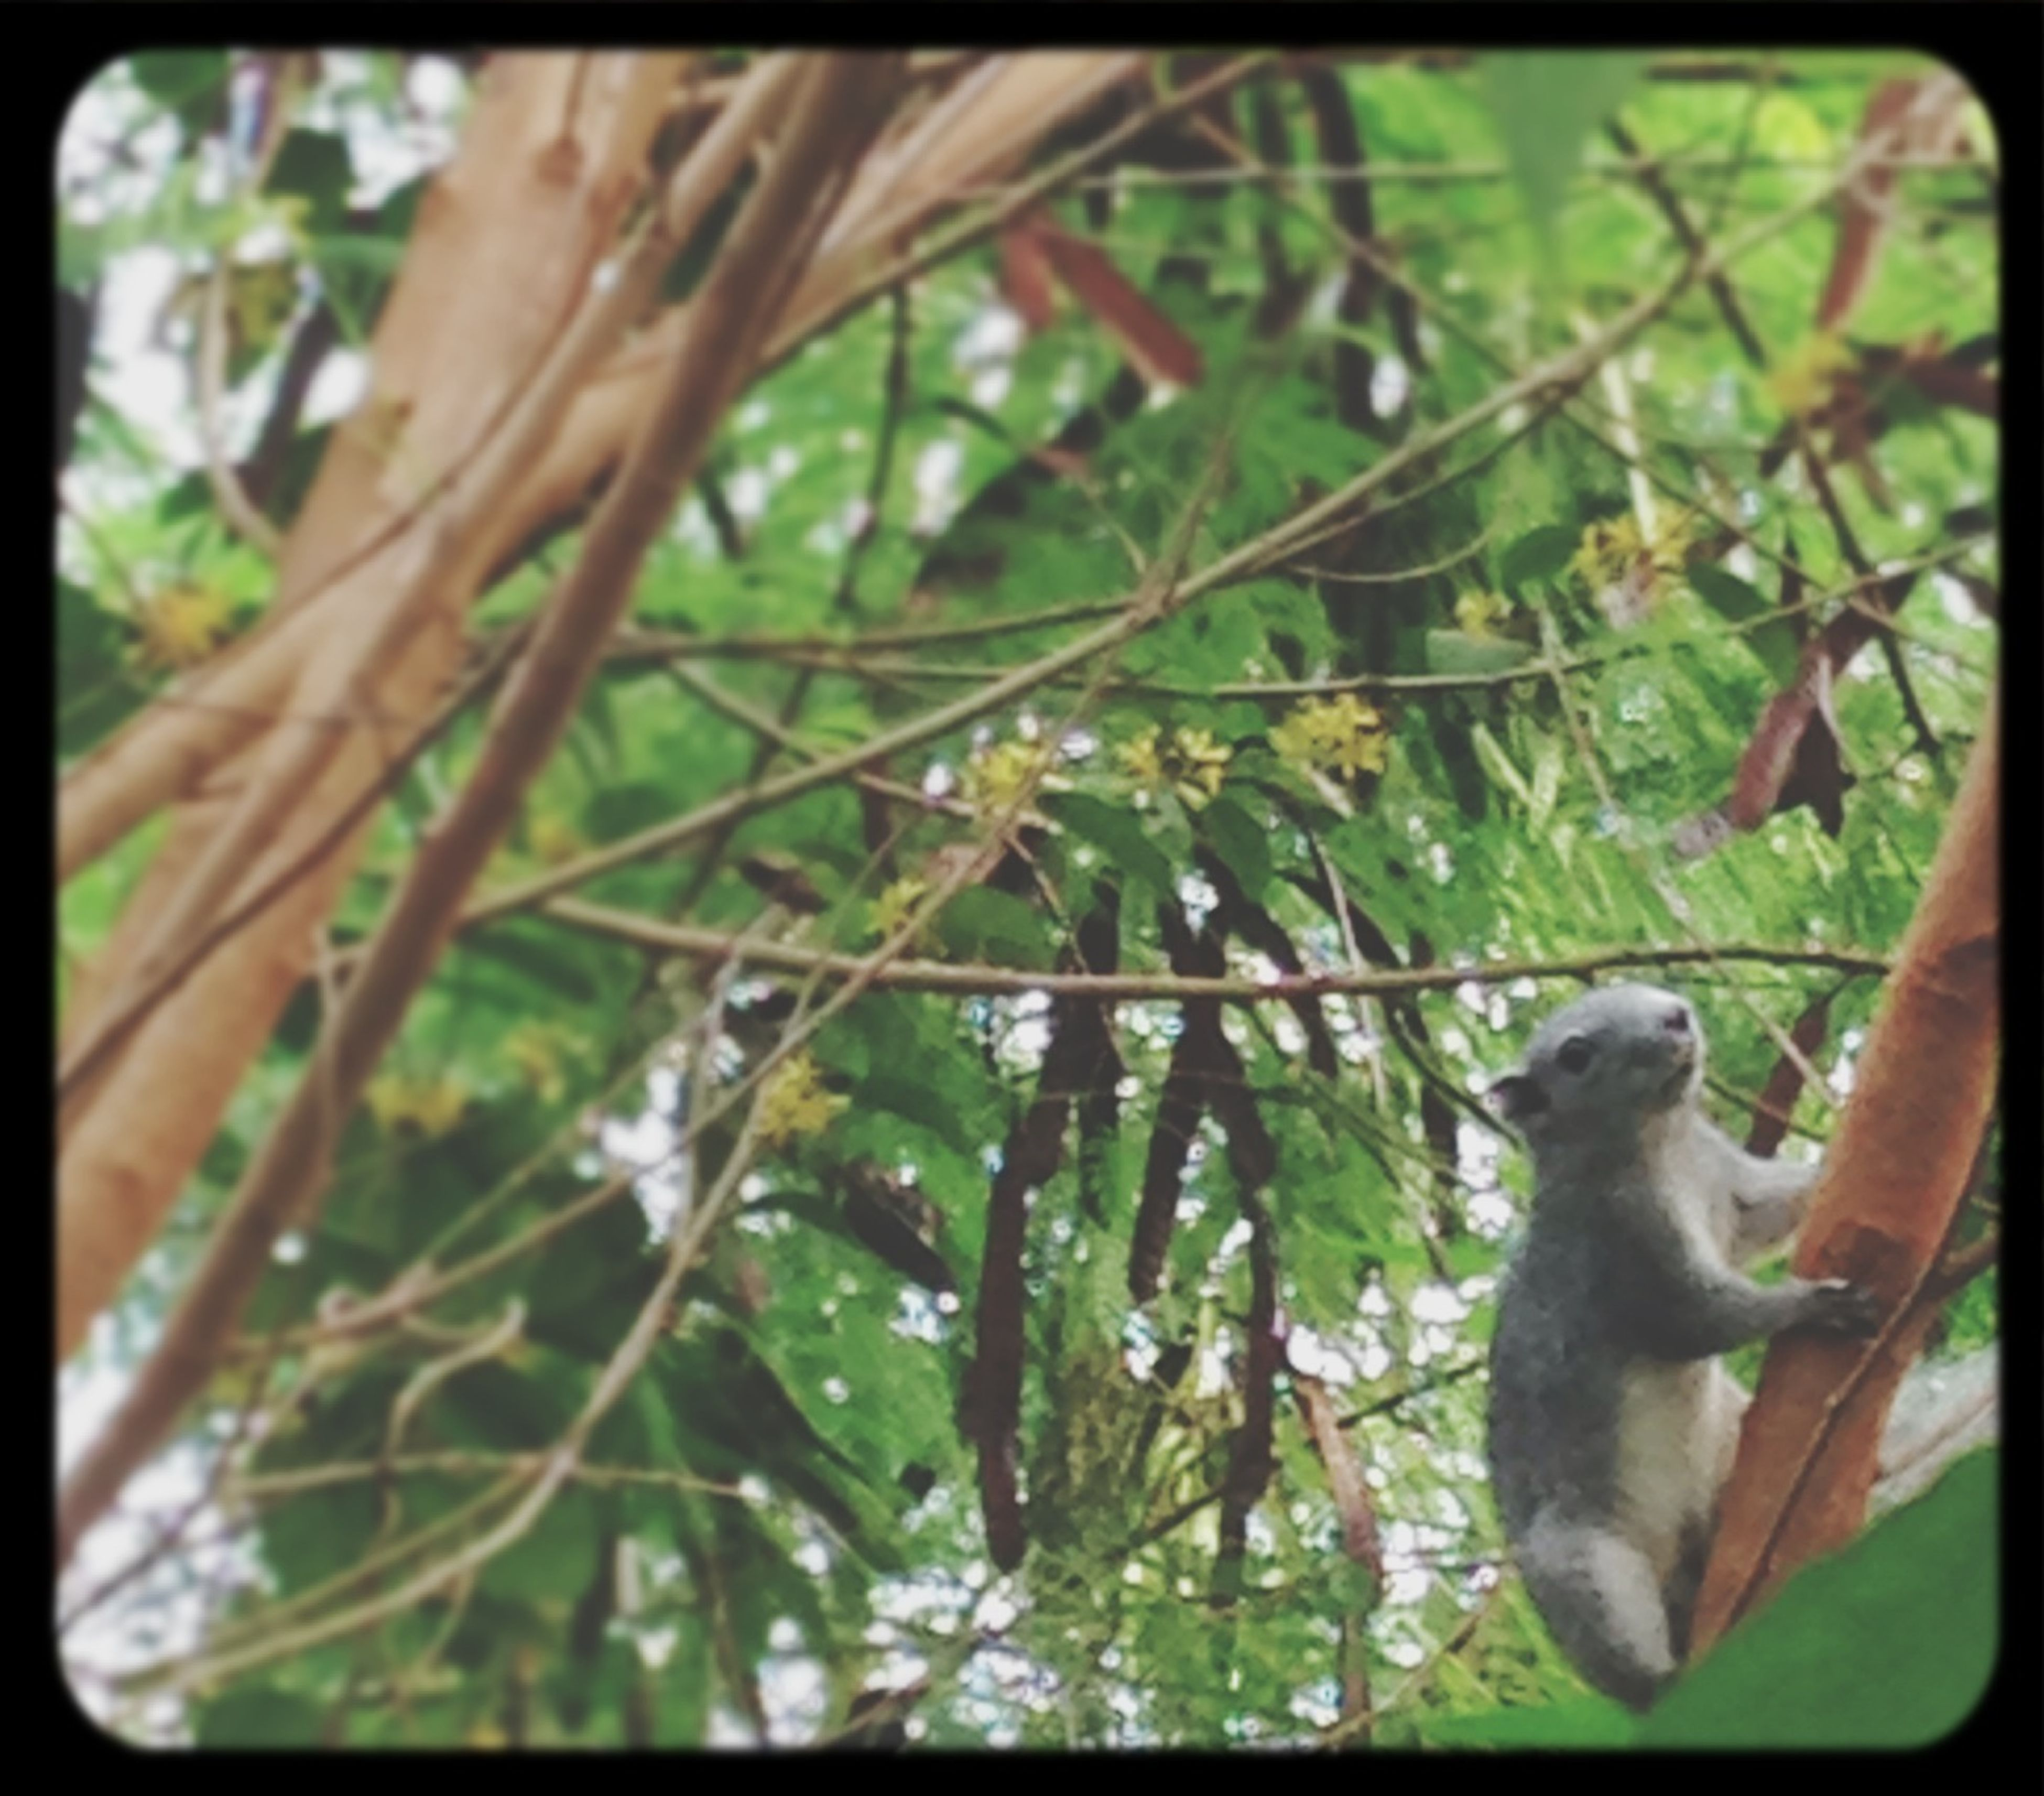 animal themes, one animal, wildlife, transfer print, animals in the wild, branch, tree, auto post production filter, mammal, forest, focus on foreground, nature, selective focus, day, close-up, outdoors, no people, bird, growth, green color